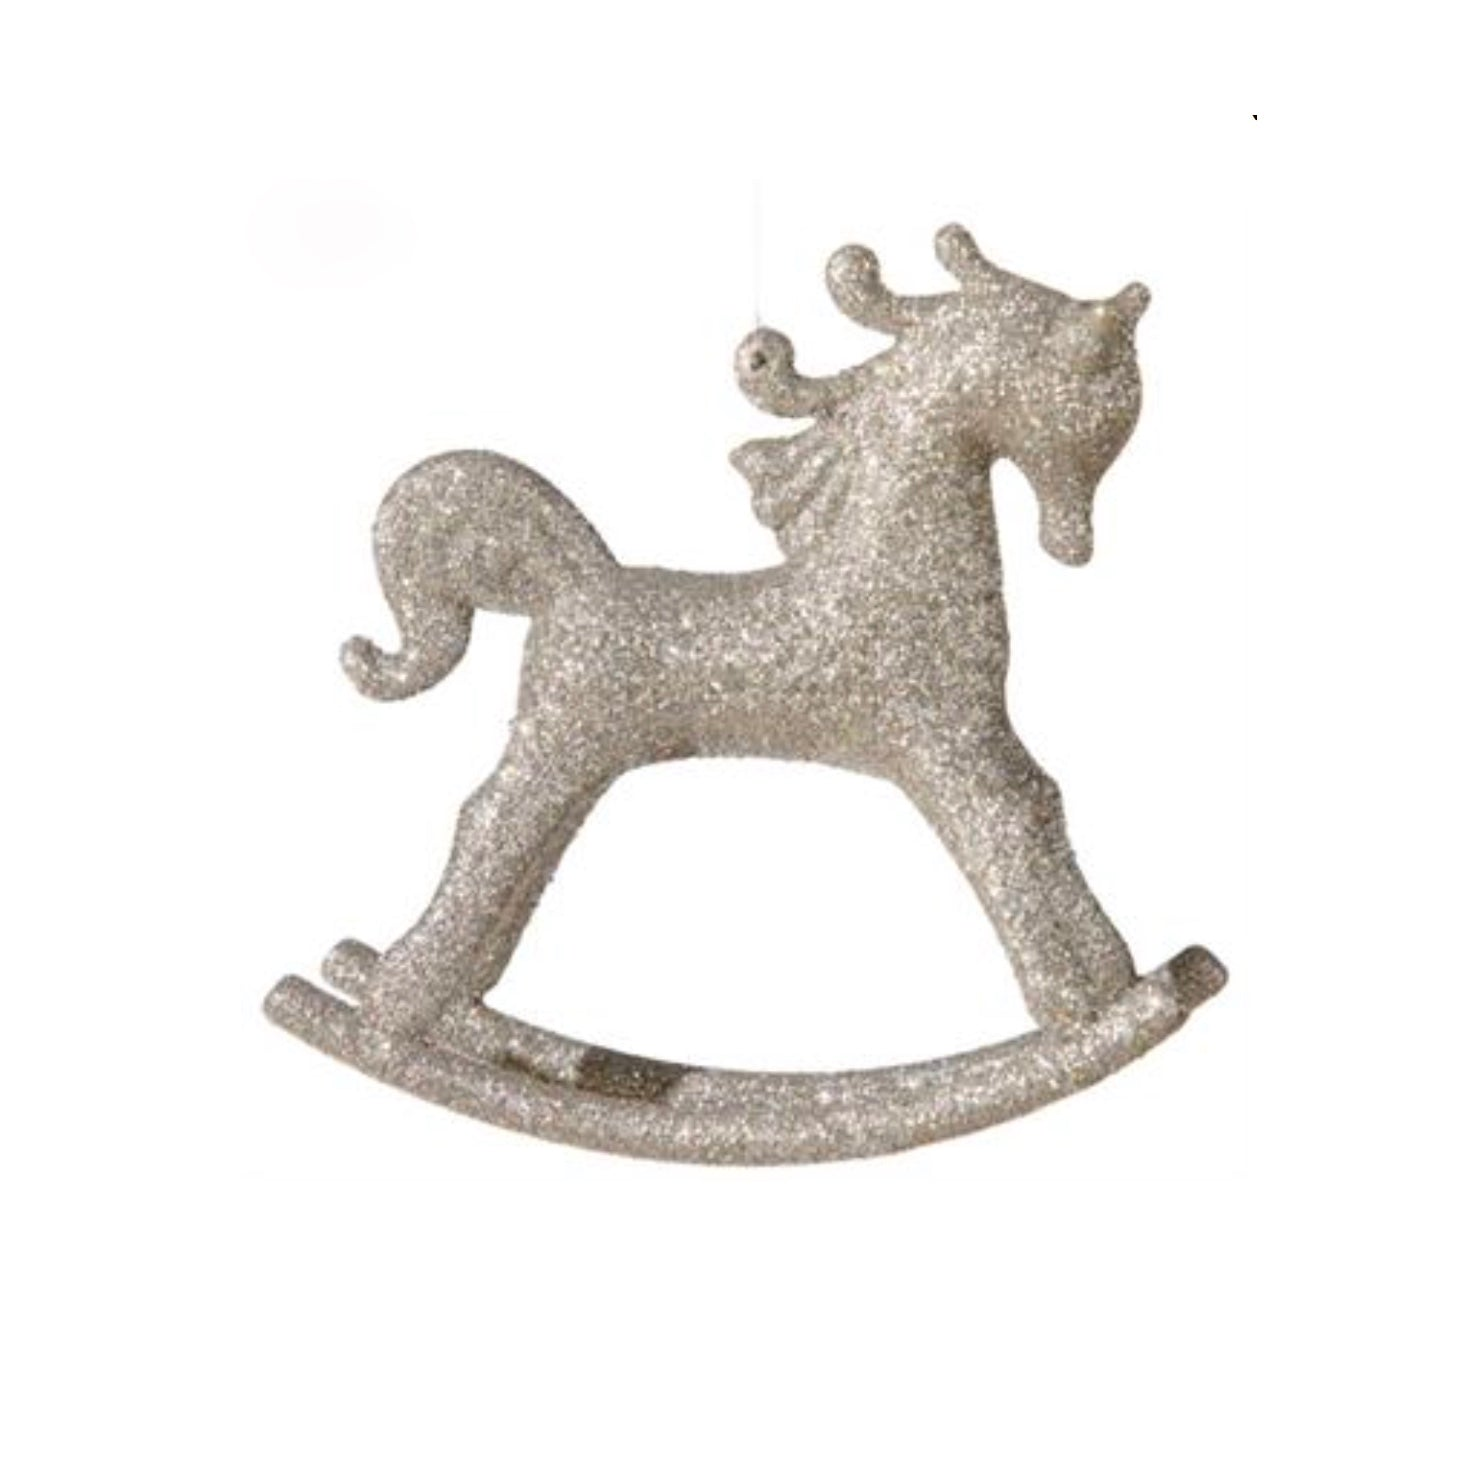 Silver Rocking Horse Ornament, FDI-Floridus Design Images, Putti Fine Furnishings